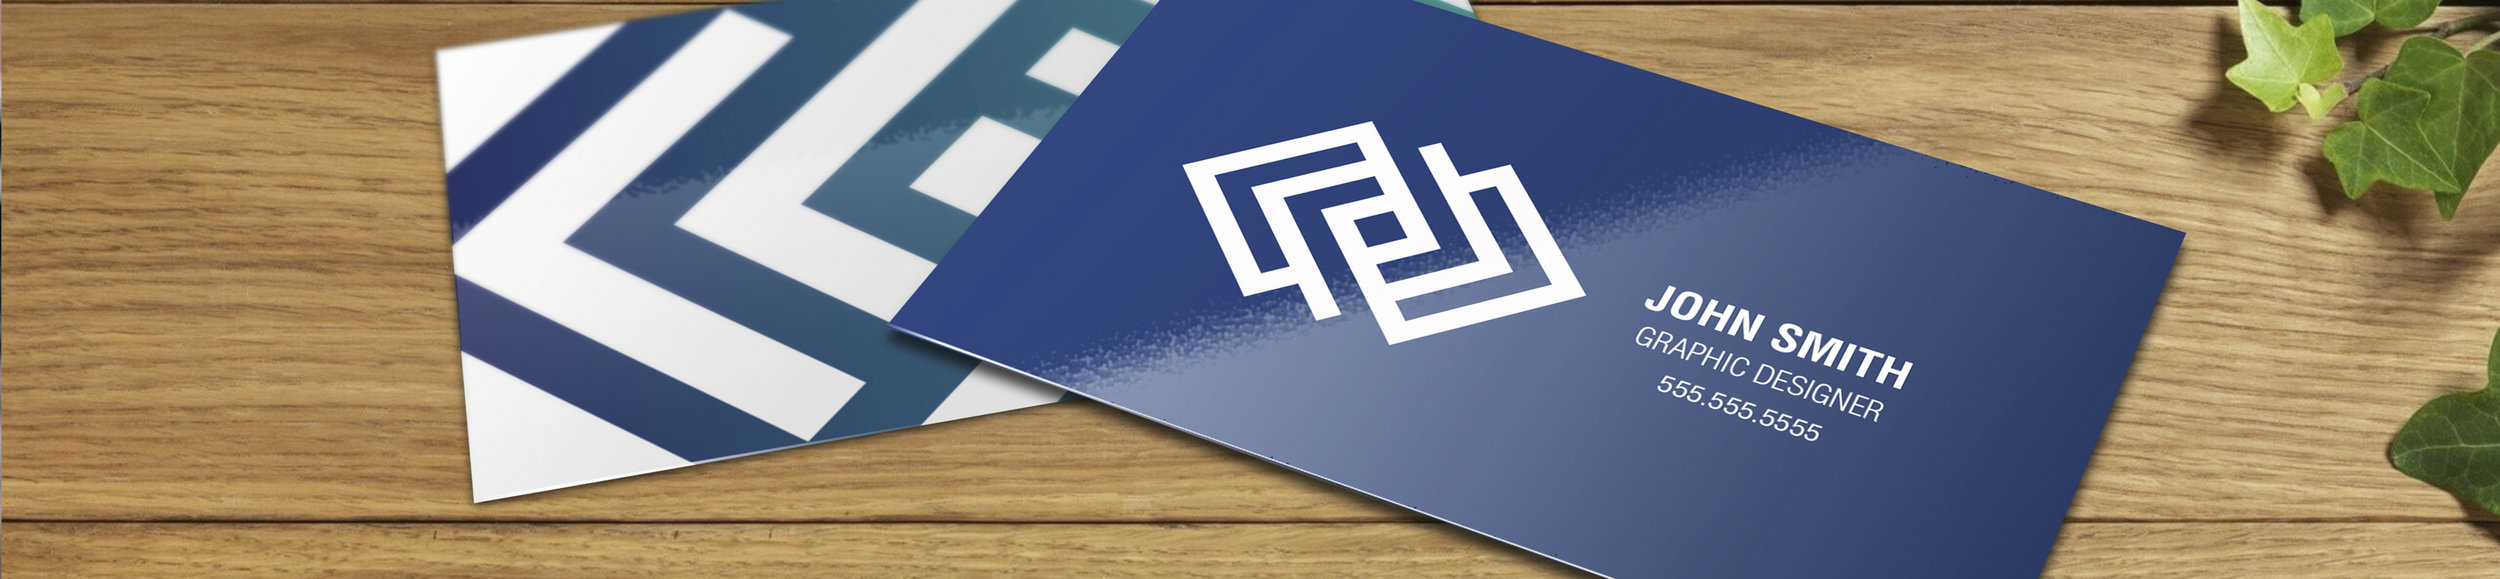 Business cards by DH Media